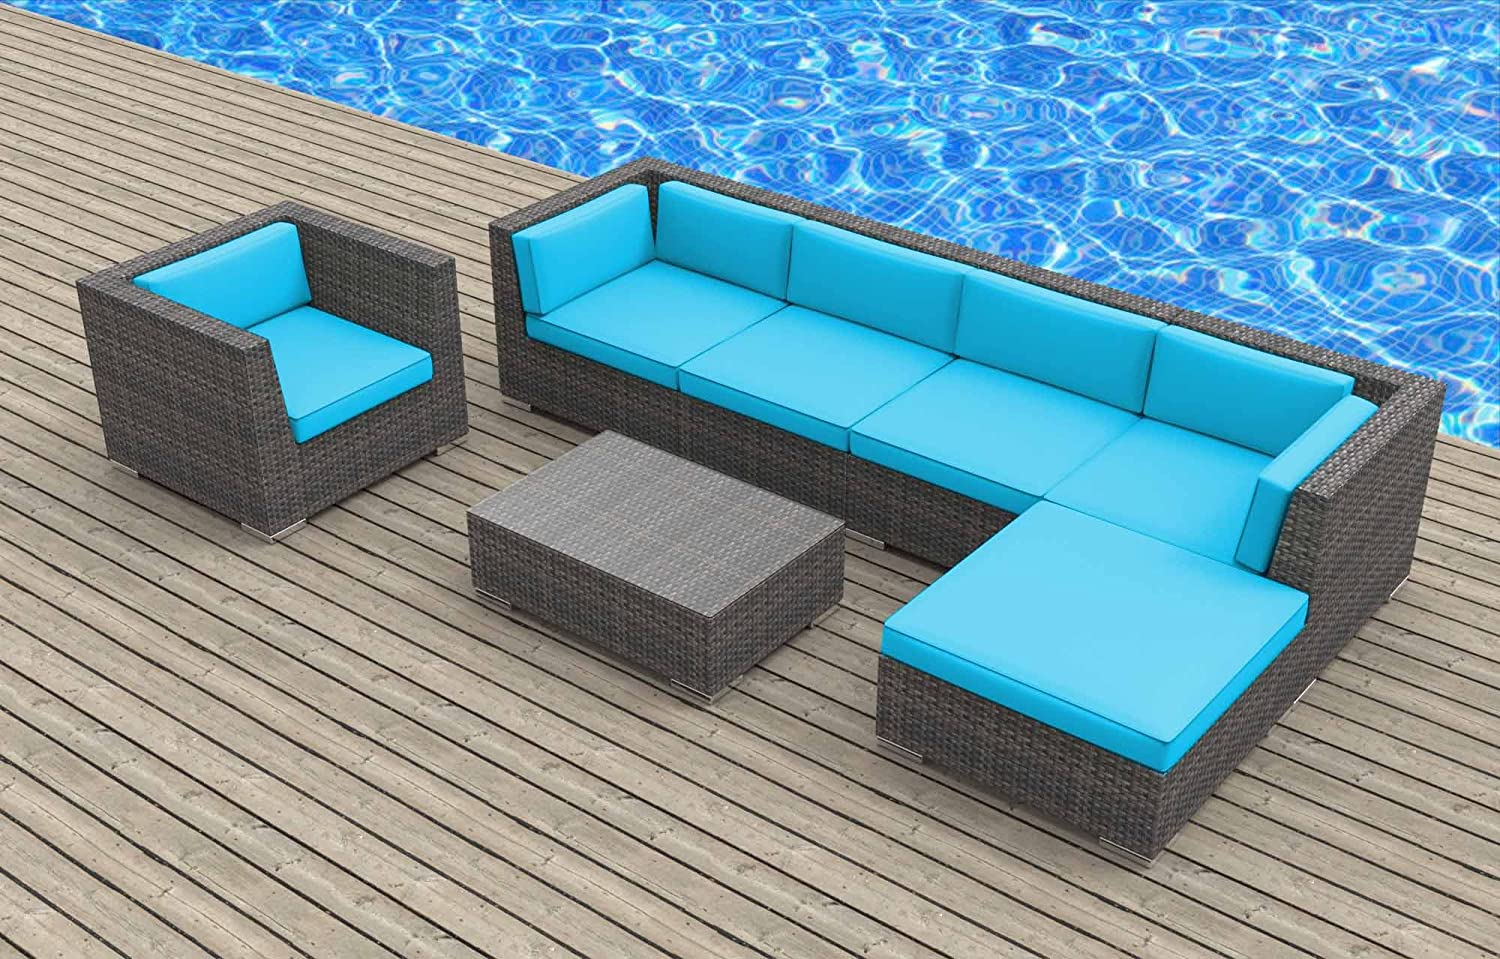 www.urbanfurnishing.net Urban Furnishing - LANAI 7pc Modern Outdoor Backyard Wicker Rattan Patio Furniture Sofa Sectional Couch Set - Sea Blue at Sears.com